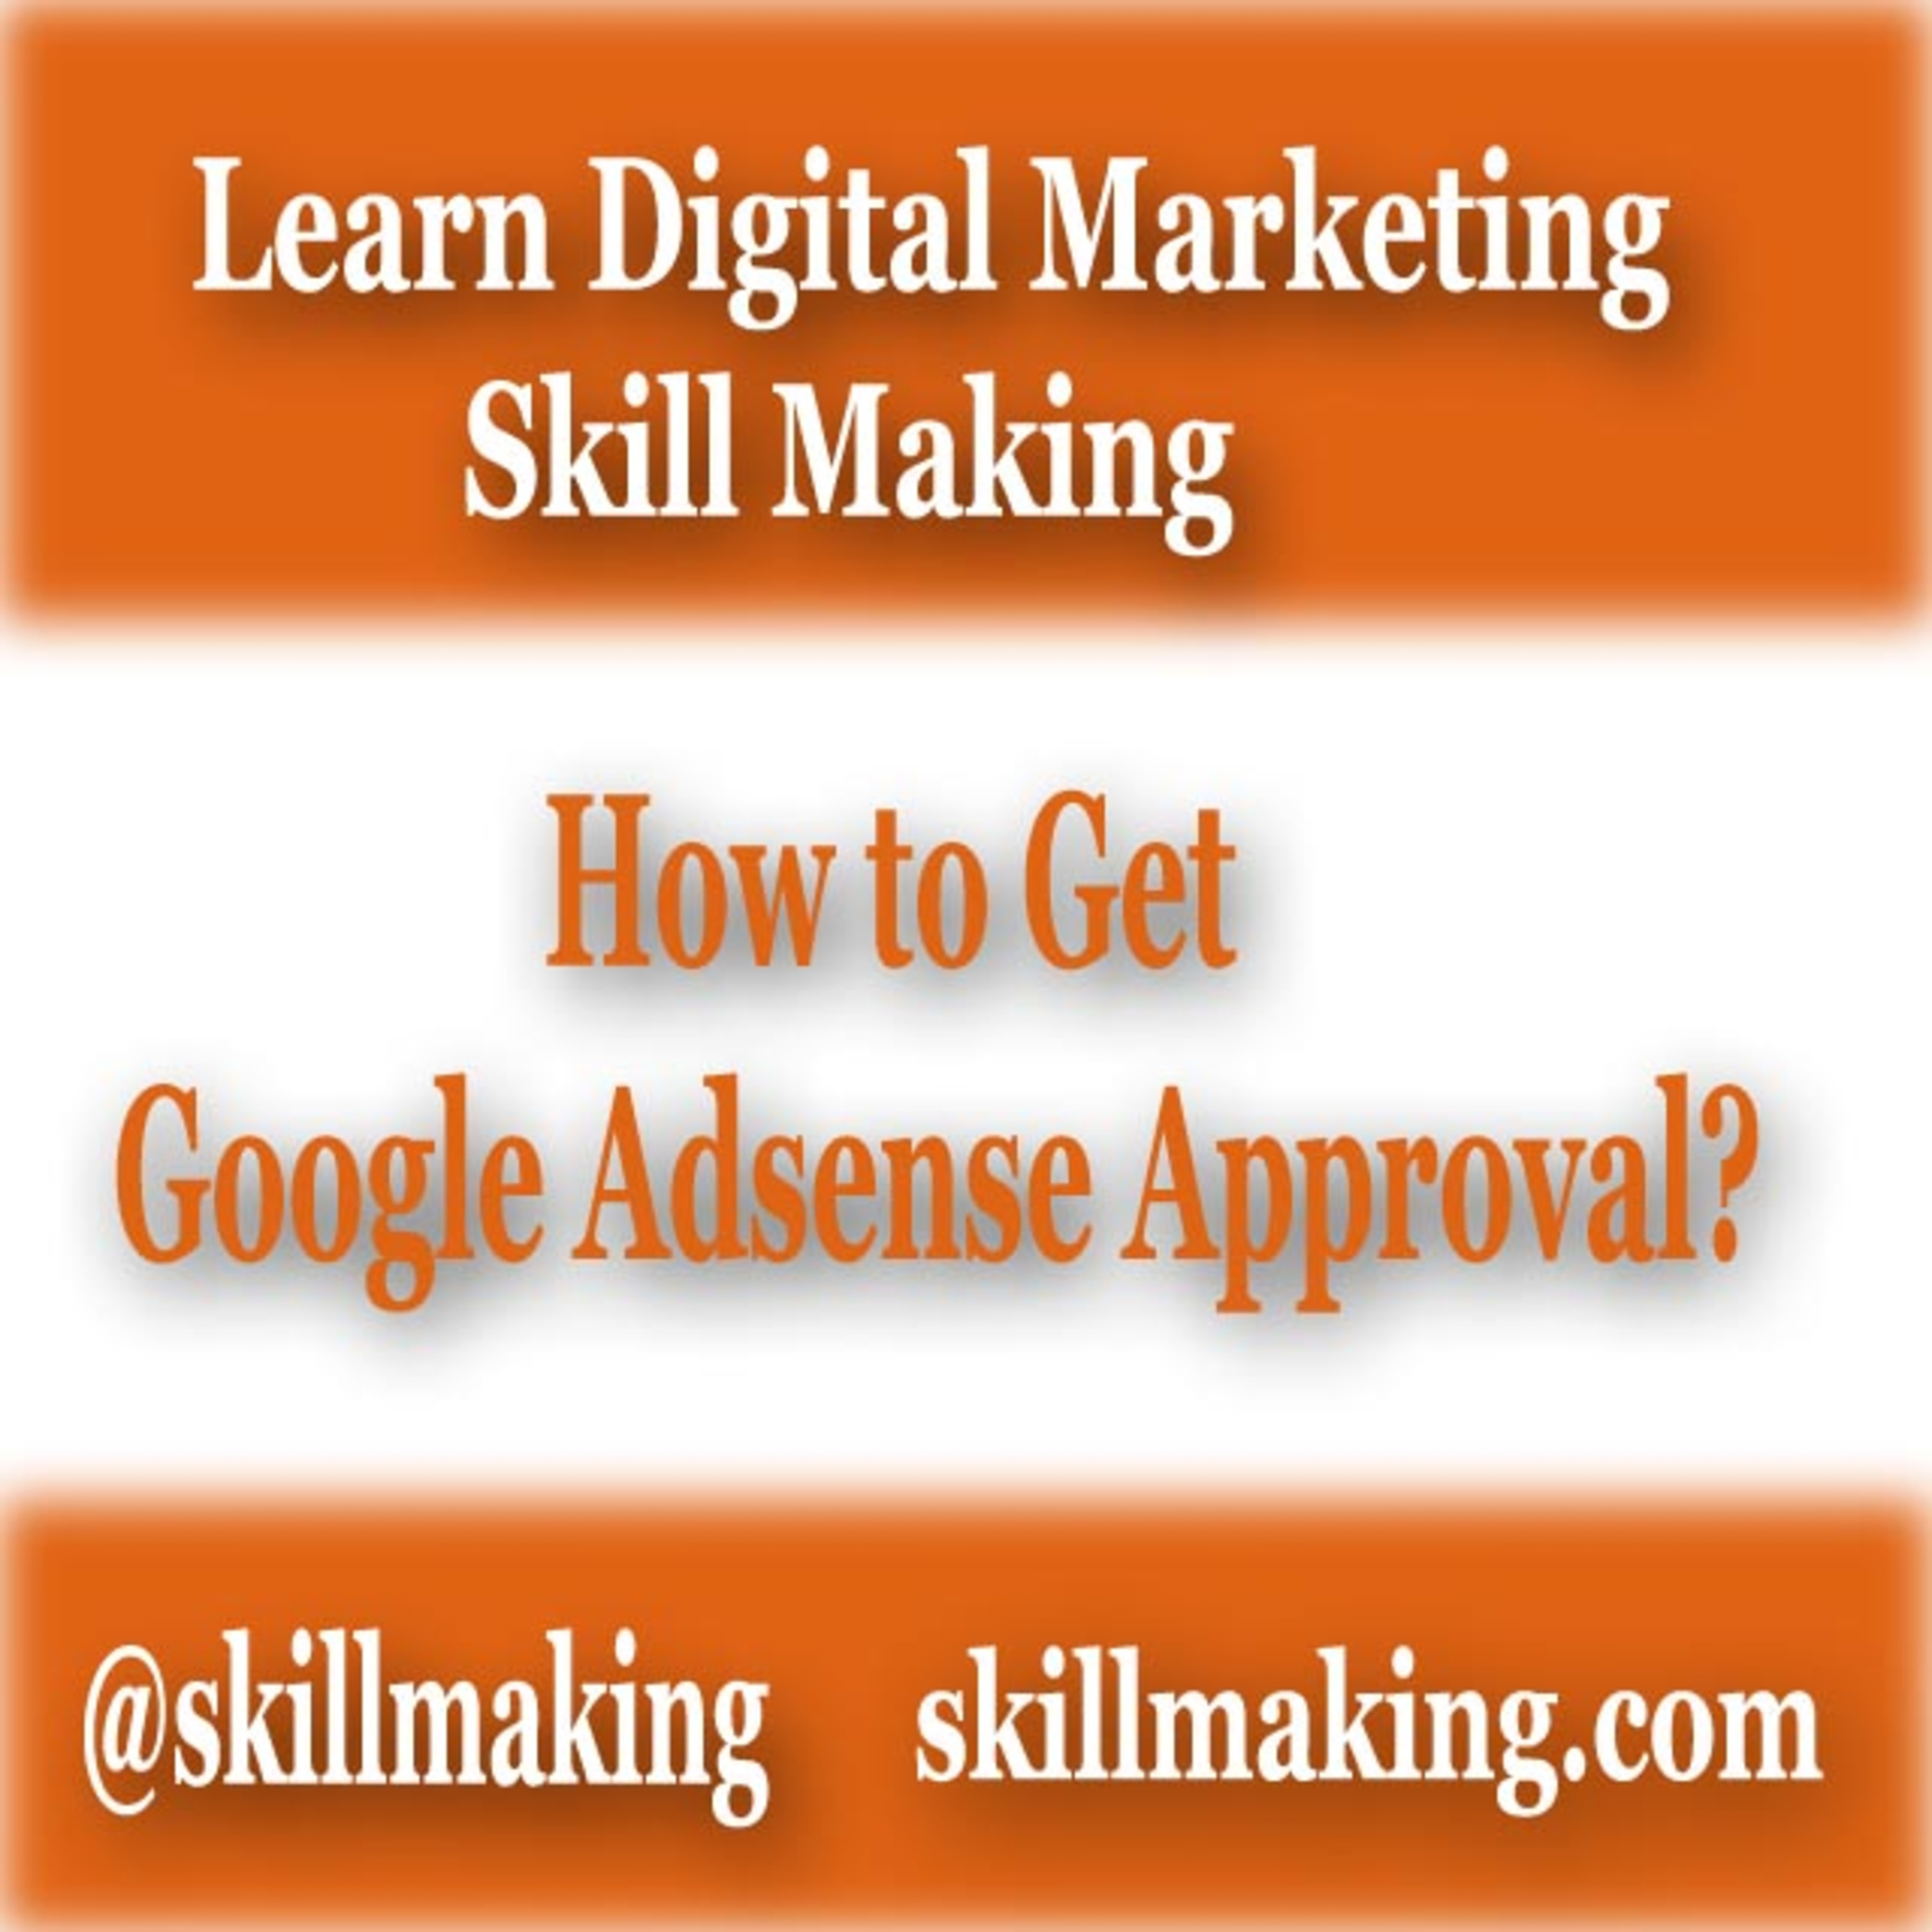 Top 7 Tips to Get Google Adsense Approval for Blog